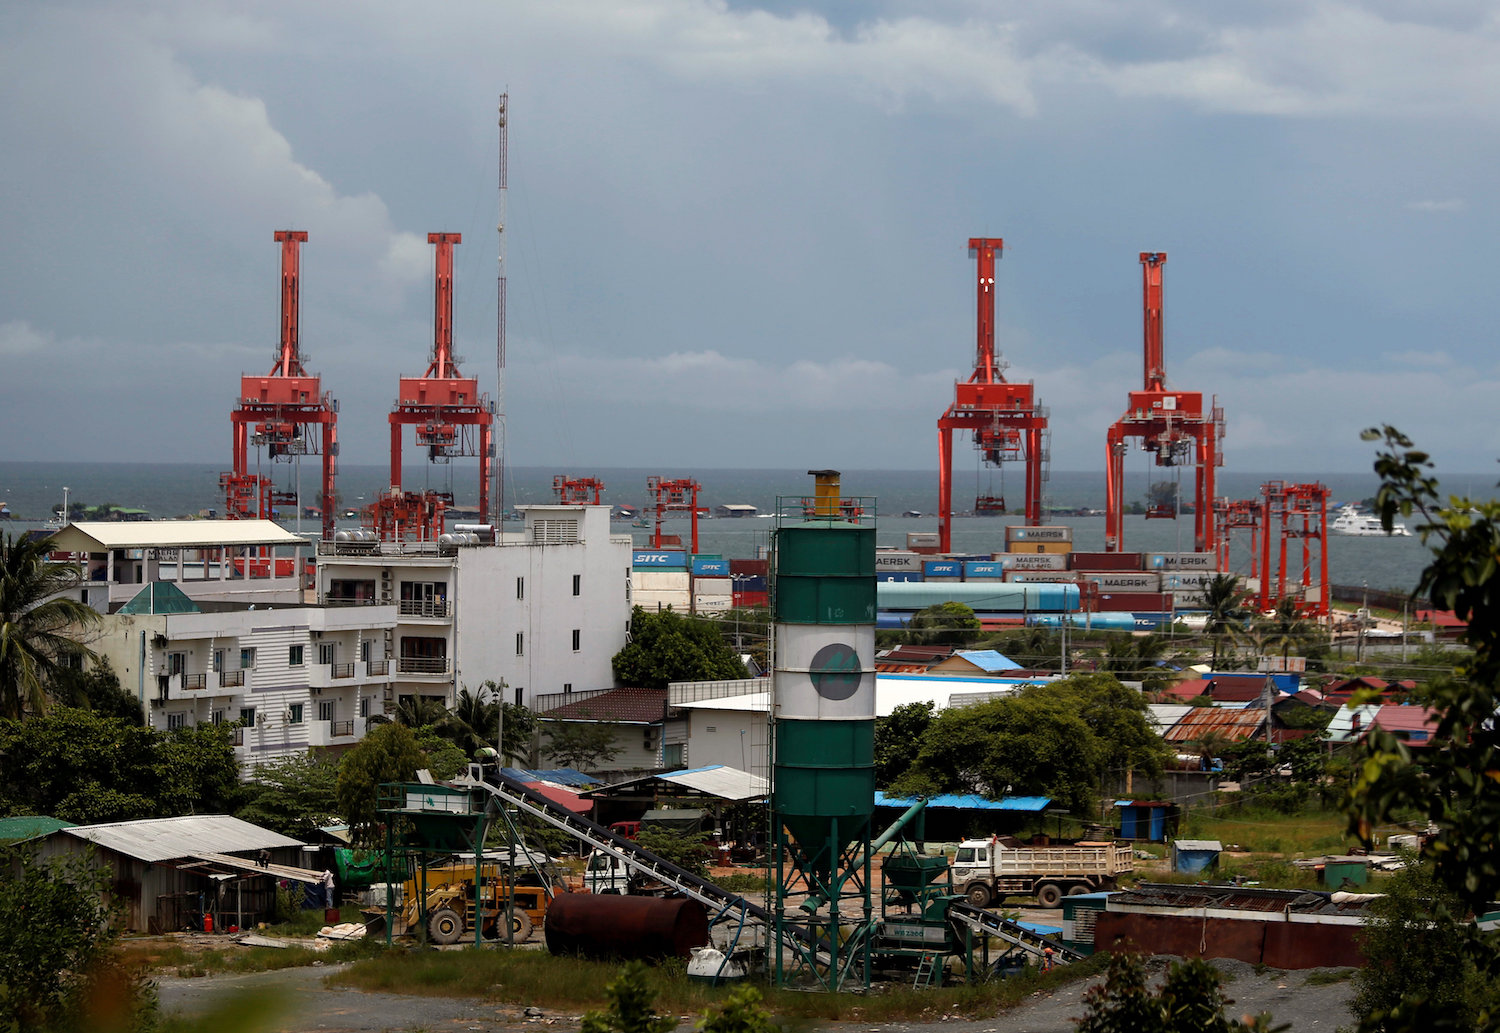 Sihanoukville Port has become more active in recent years as Chinese investment pours into the area. (Reuters Photo)